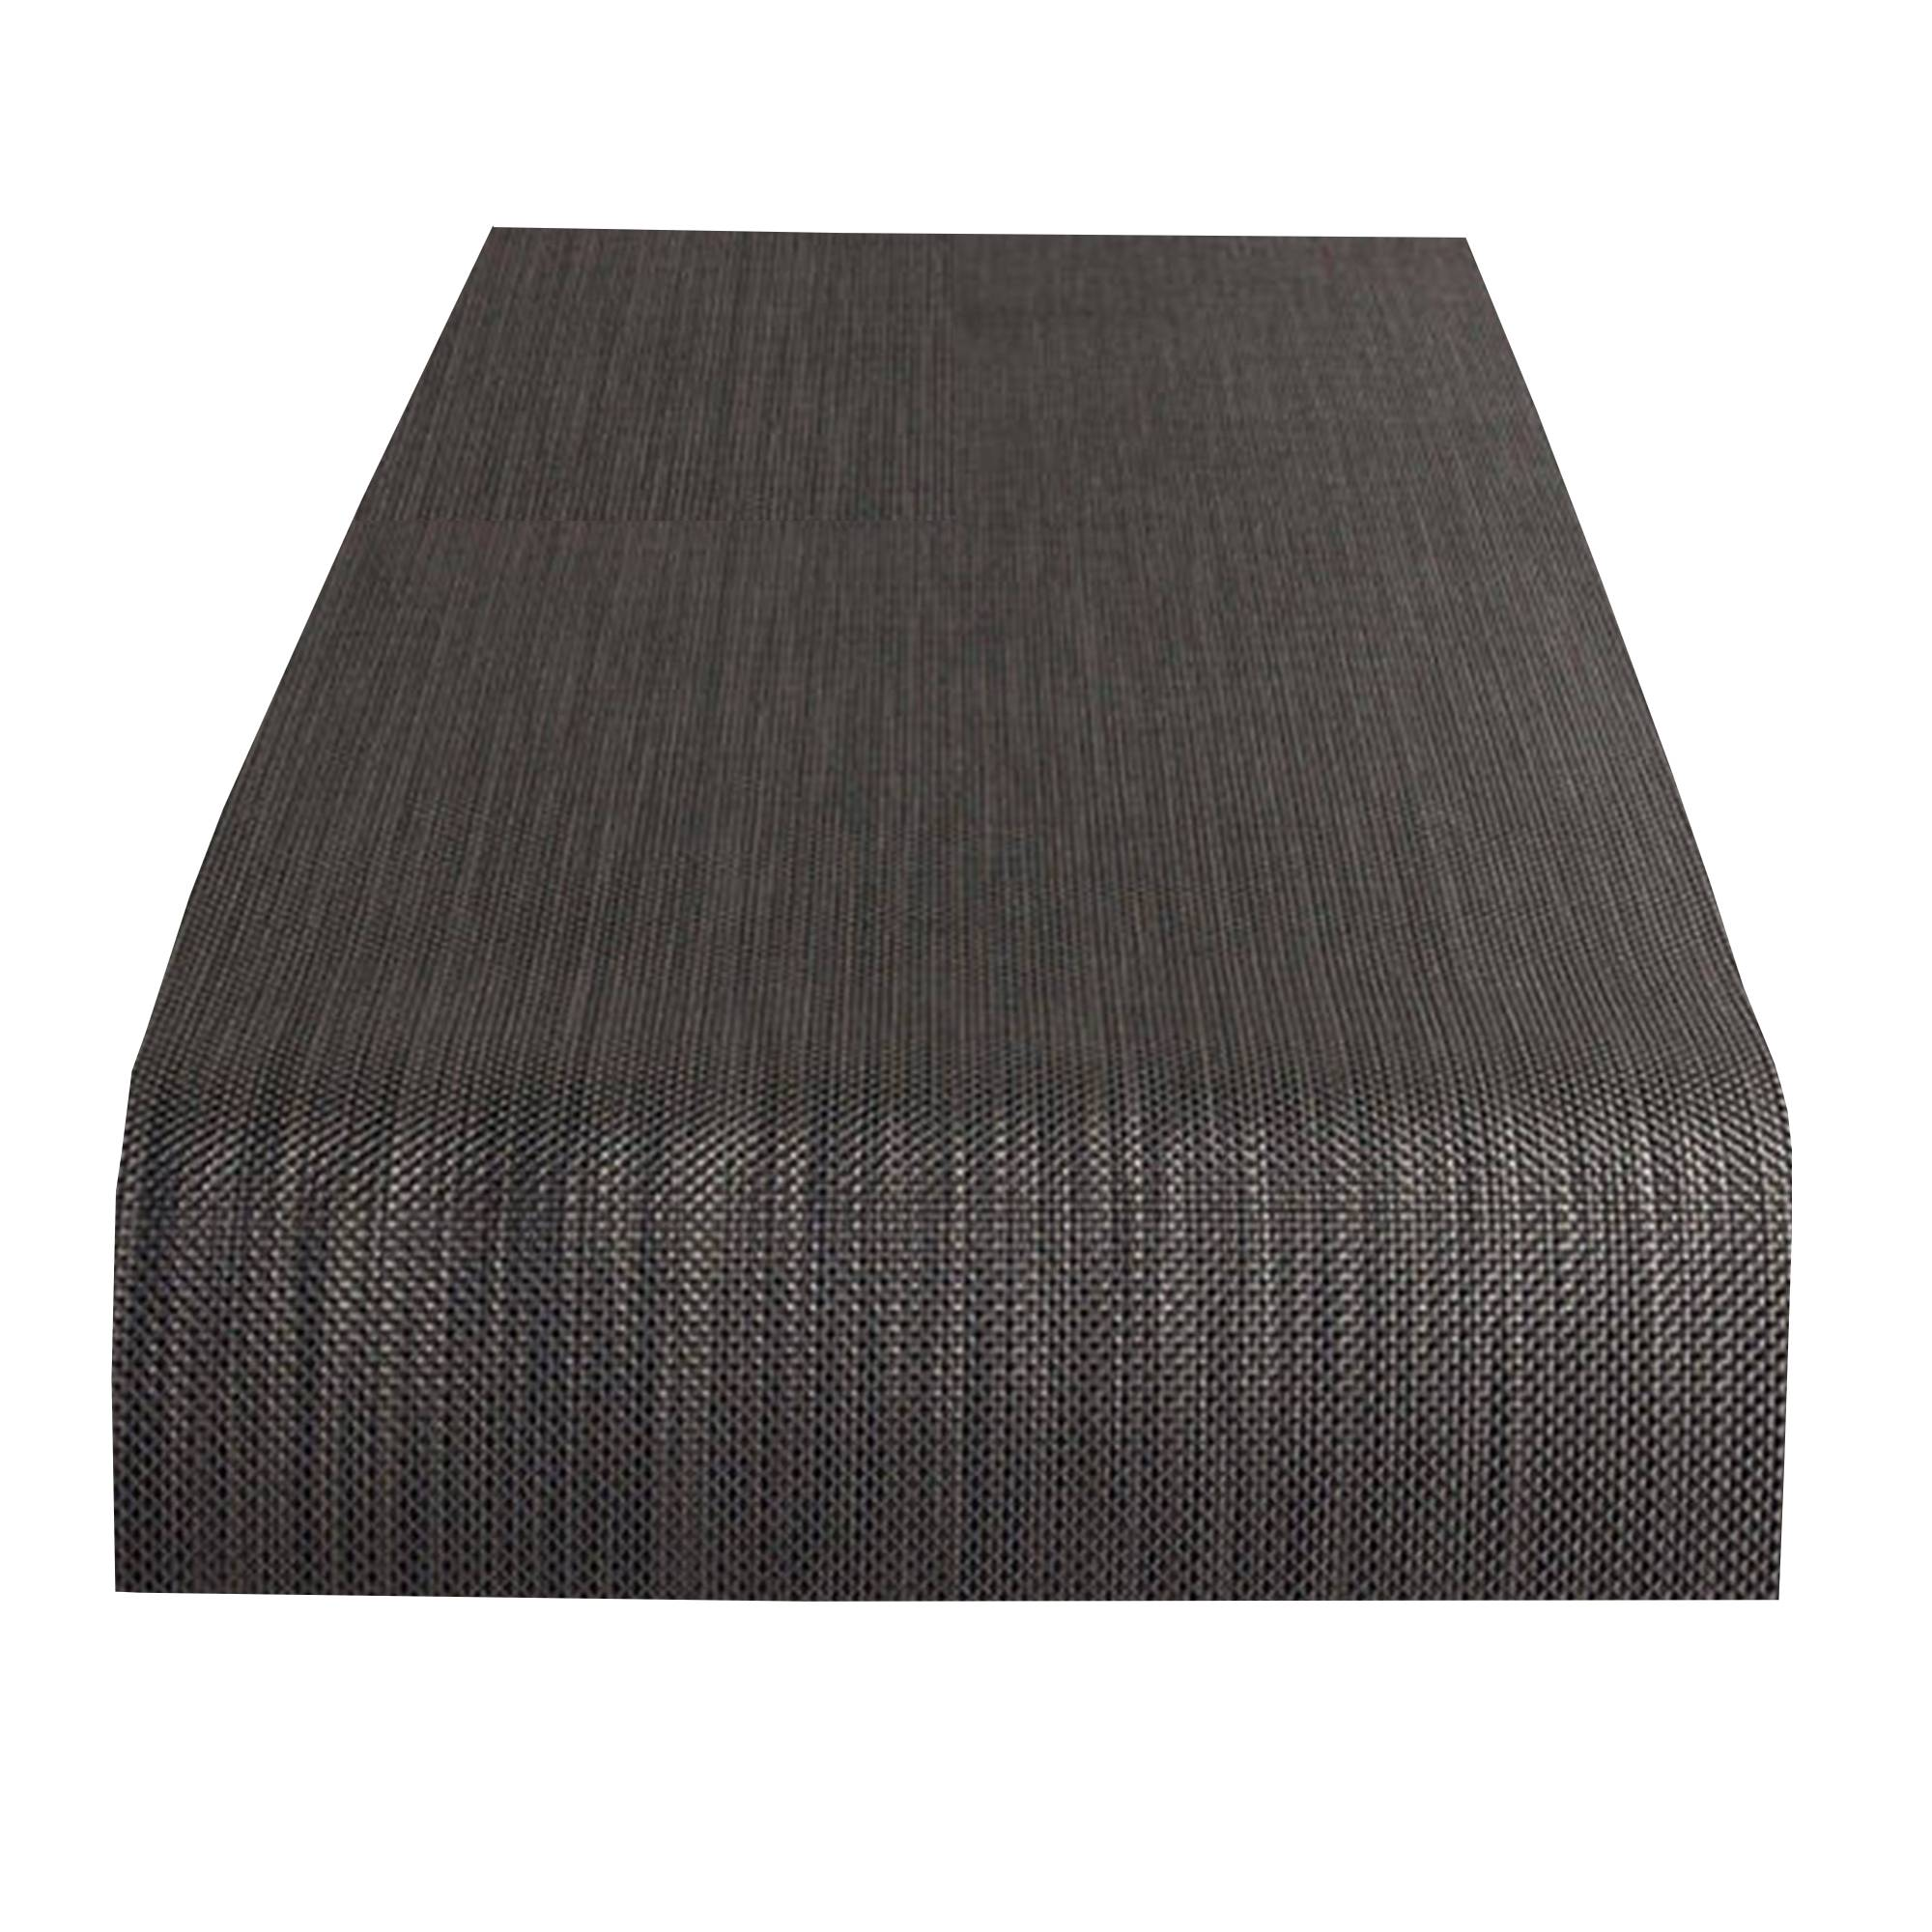 Mini Basketweave Table Runner: Light Grey